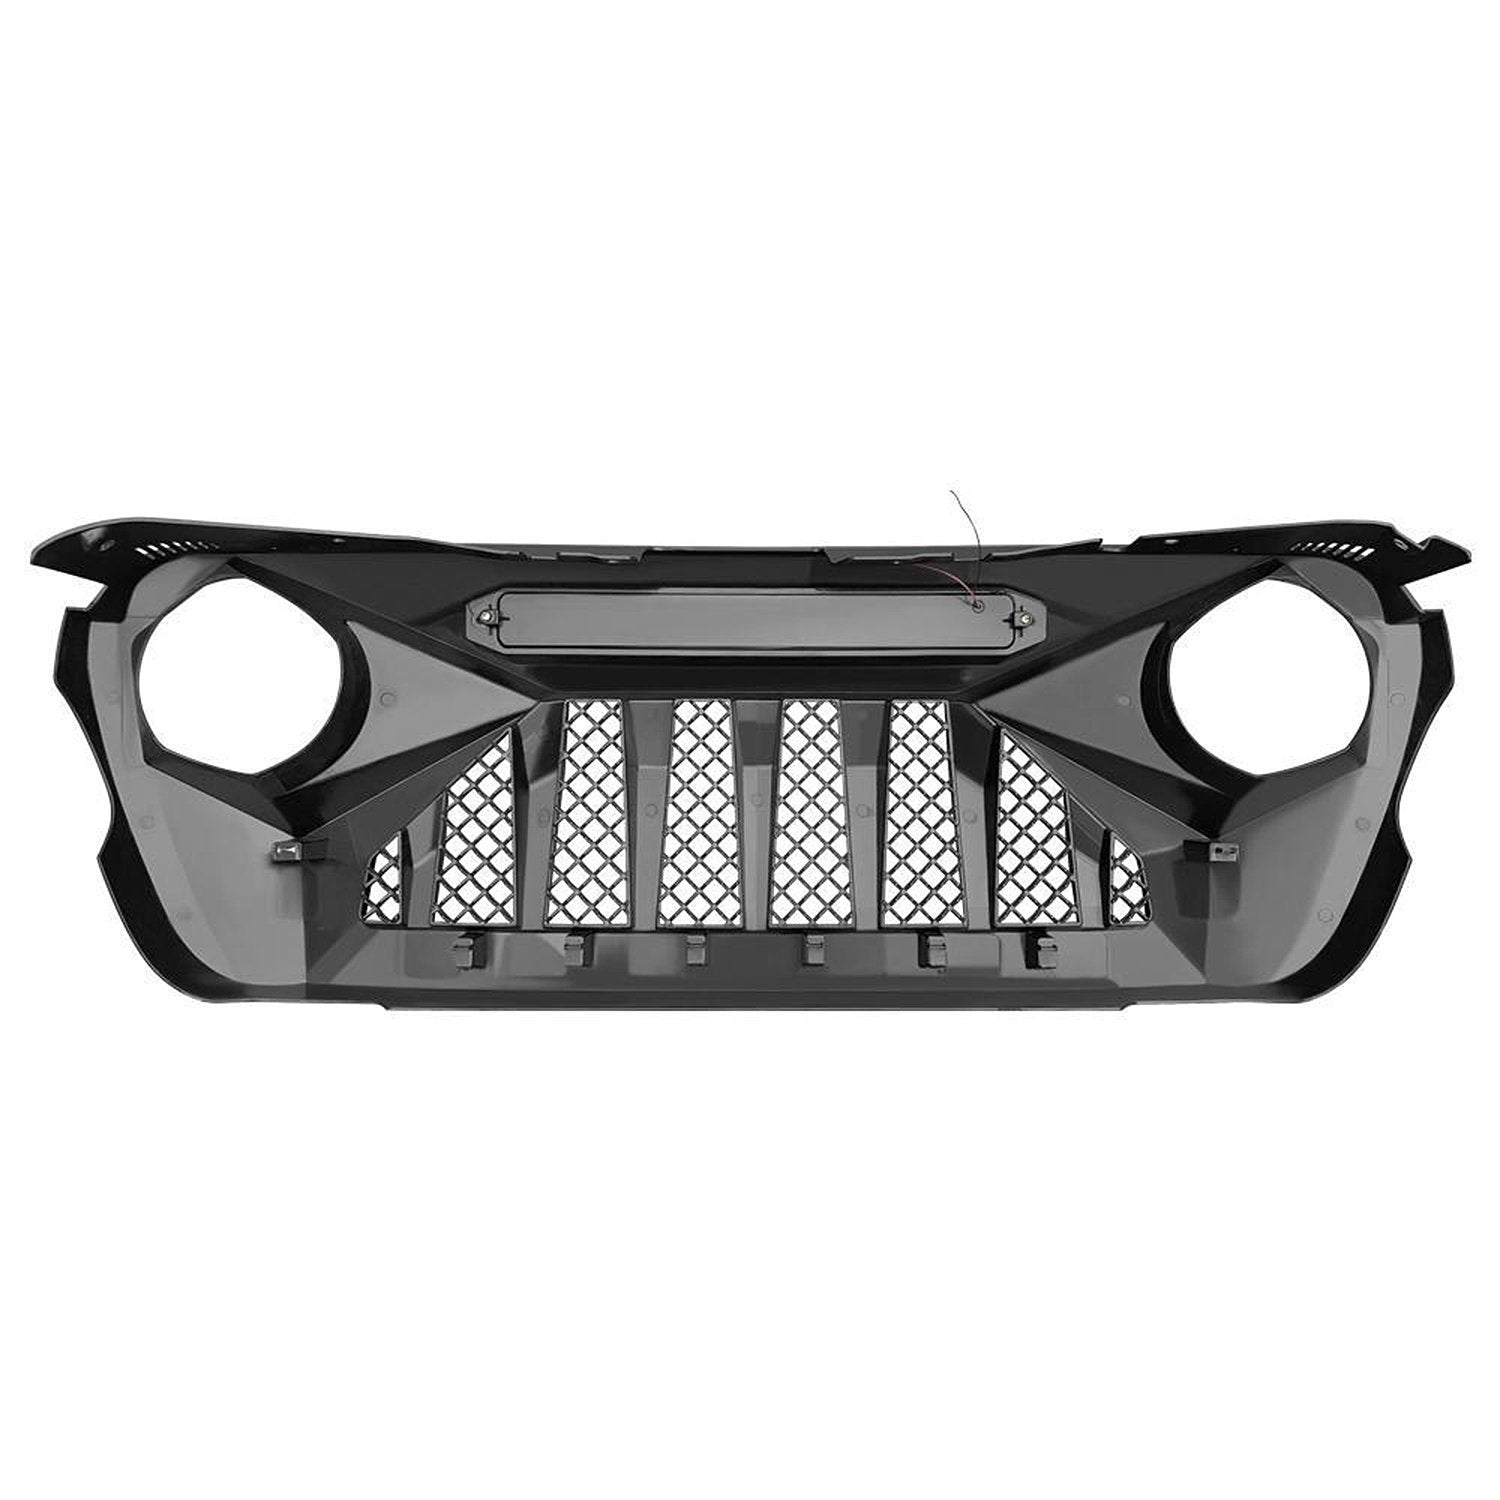 [Pre-Order]Demon Grille w/ White Star DRL for 18-20 Jeep Wrangler JL & Gladiator